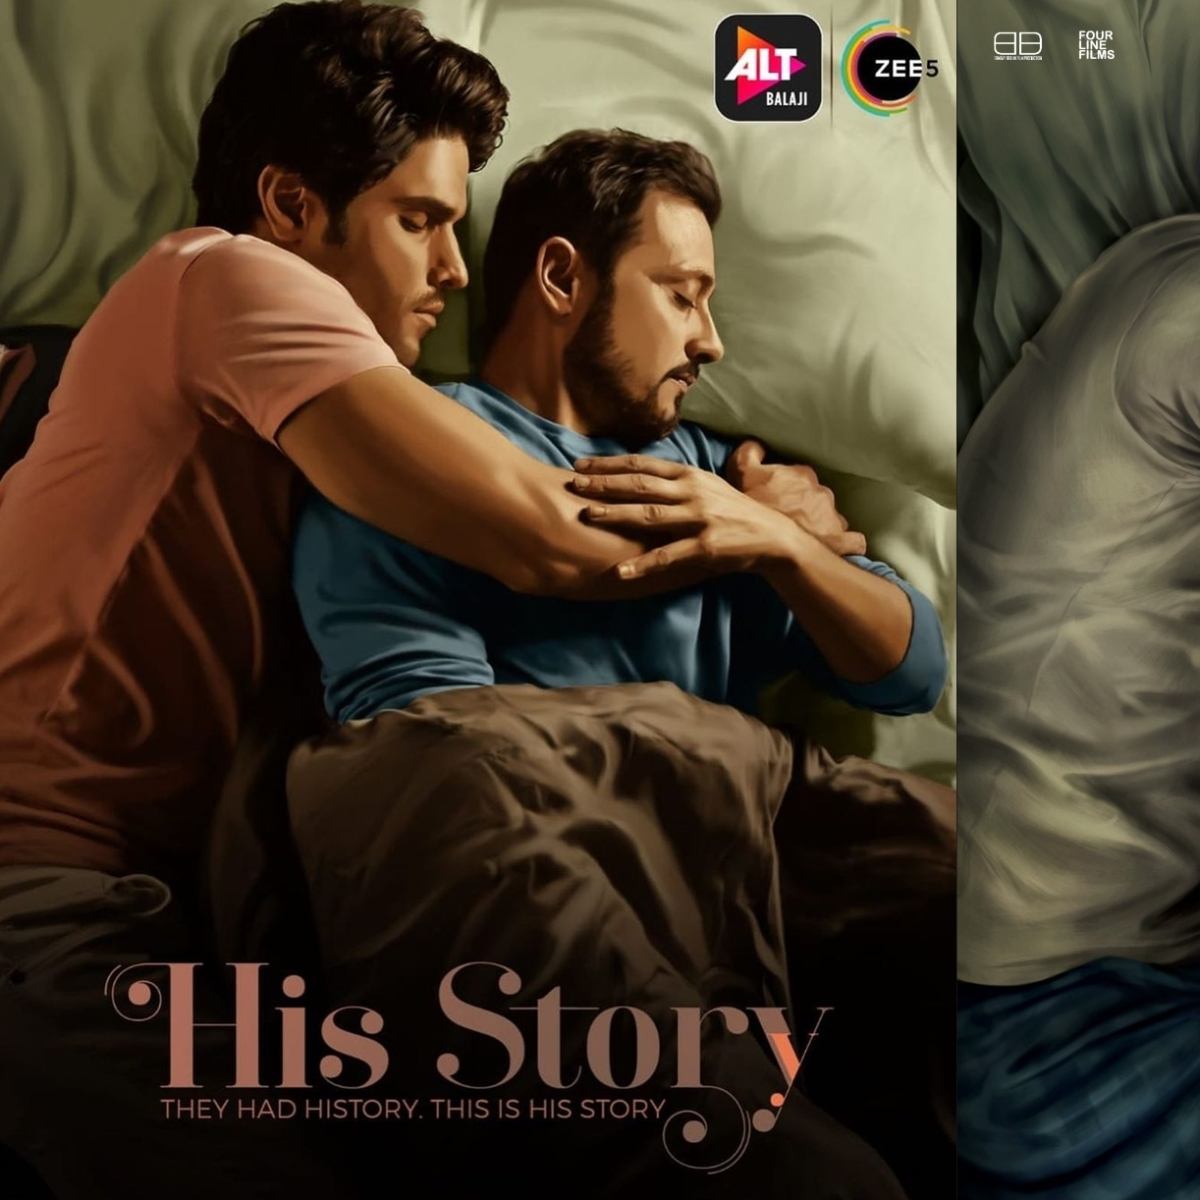 'Ripped off without decency': Ekta Kapoor's same-sex web series 'His Story' poster accused of plagiarism